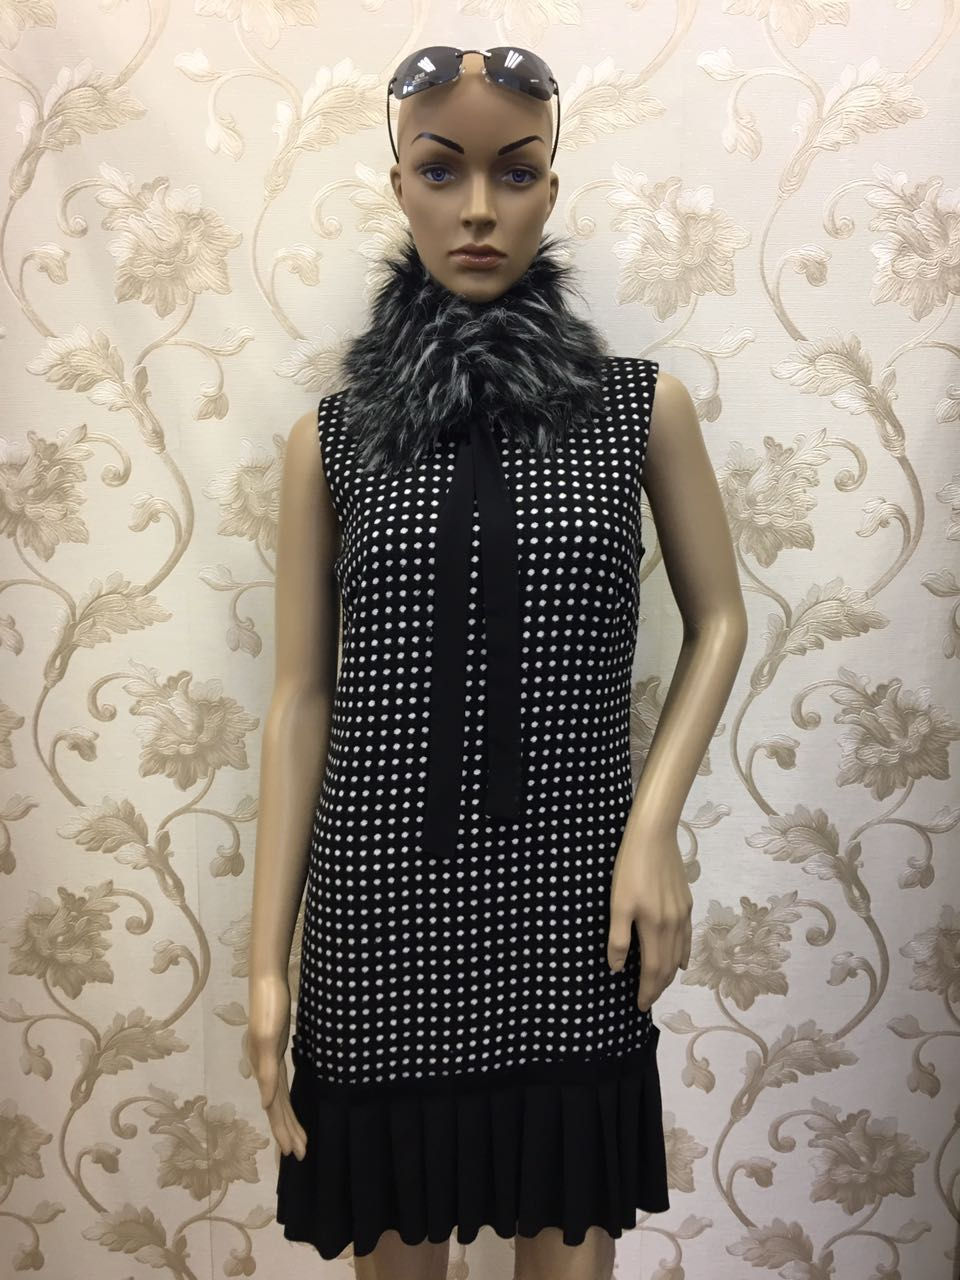 sciccoso-faux-fur-collar-compliment-black-polka-dot-dress